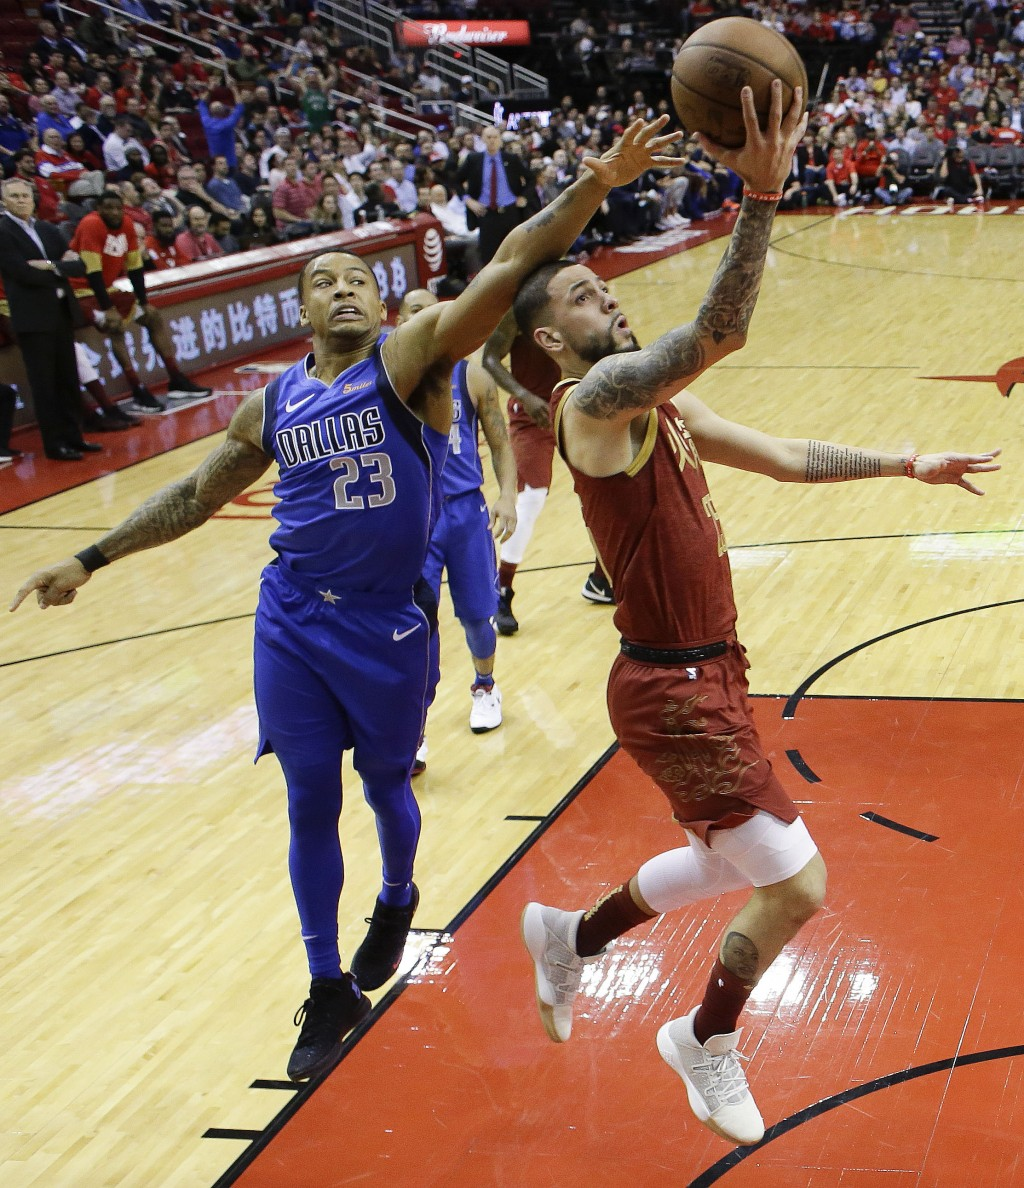 Houston Rockets guard Austin Rivers, right, drives to the basket as Dallas Mavericks guard Trey Burke defends during the first half of an NBA basketba